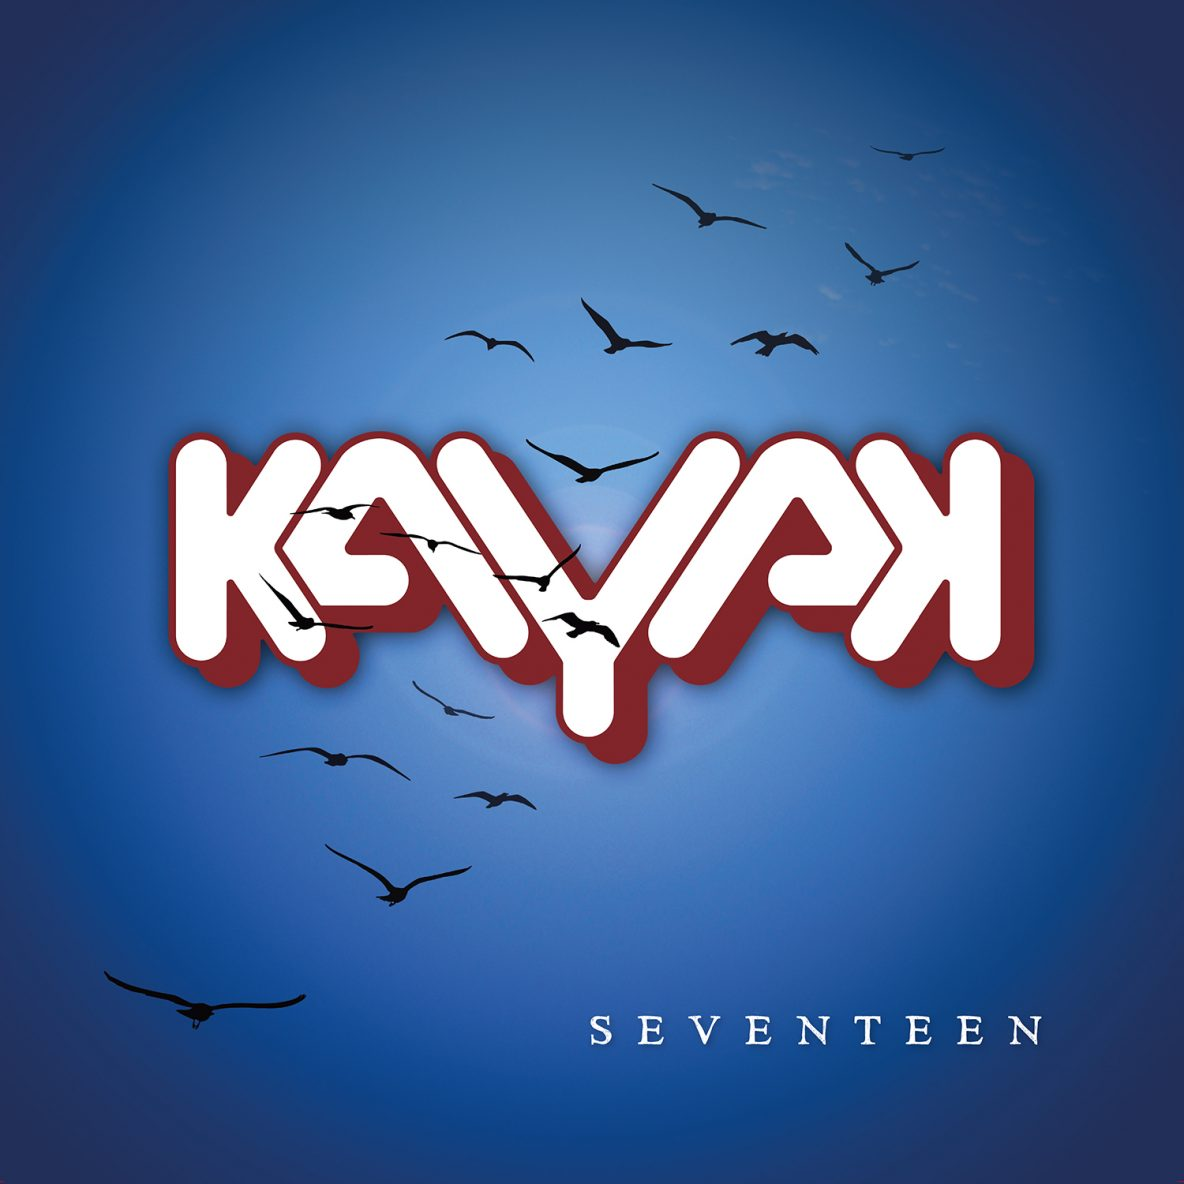 17001 GlassVille Music Kayak Seventeen LP cover inslag